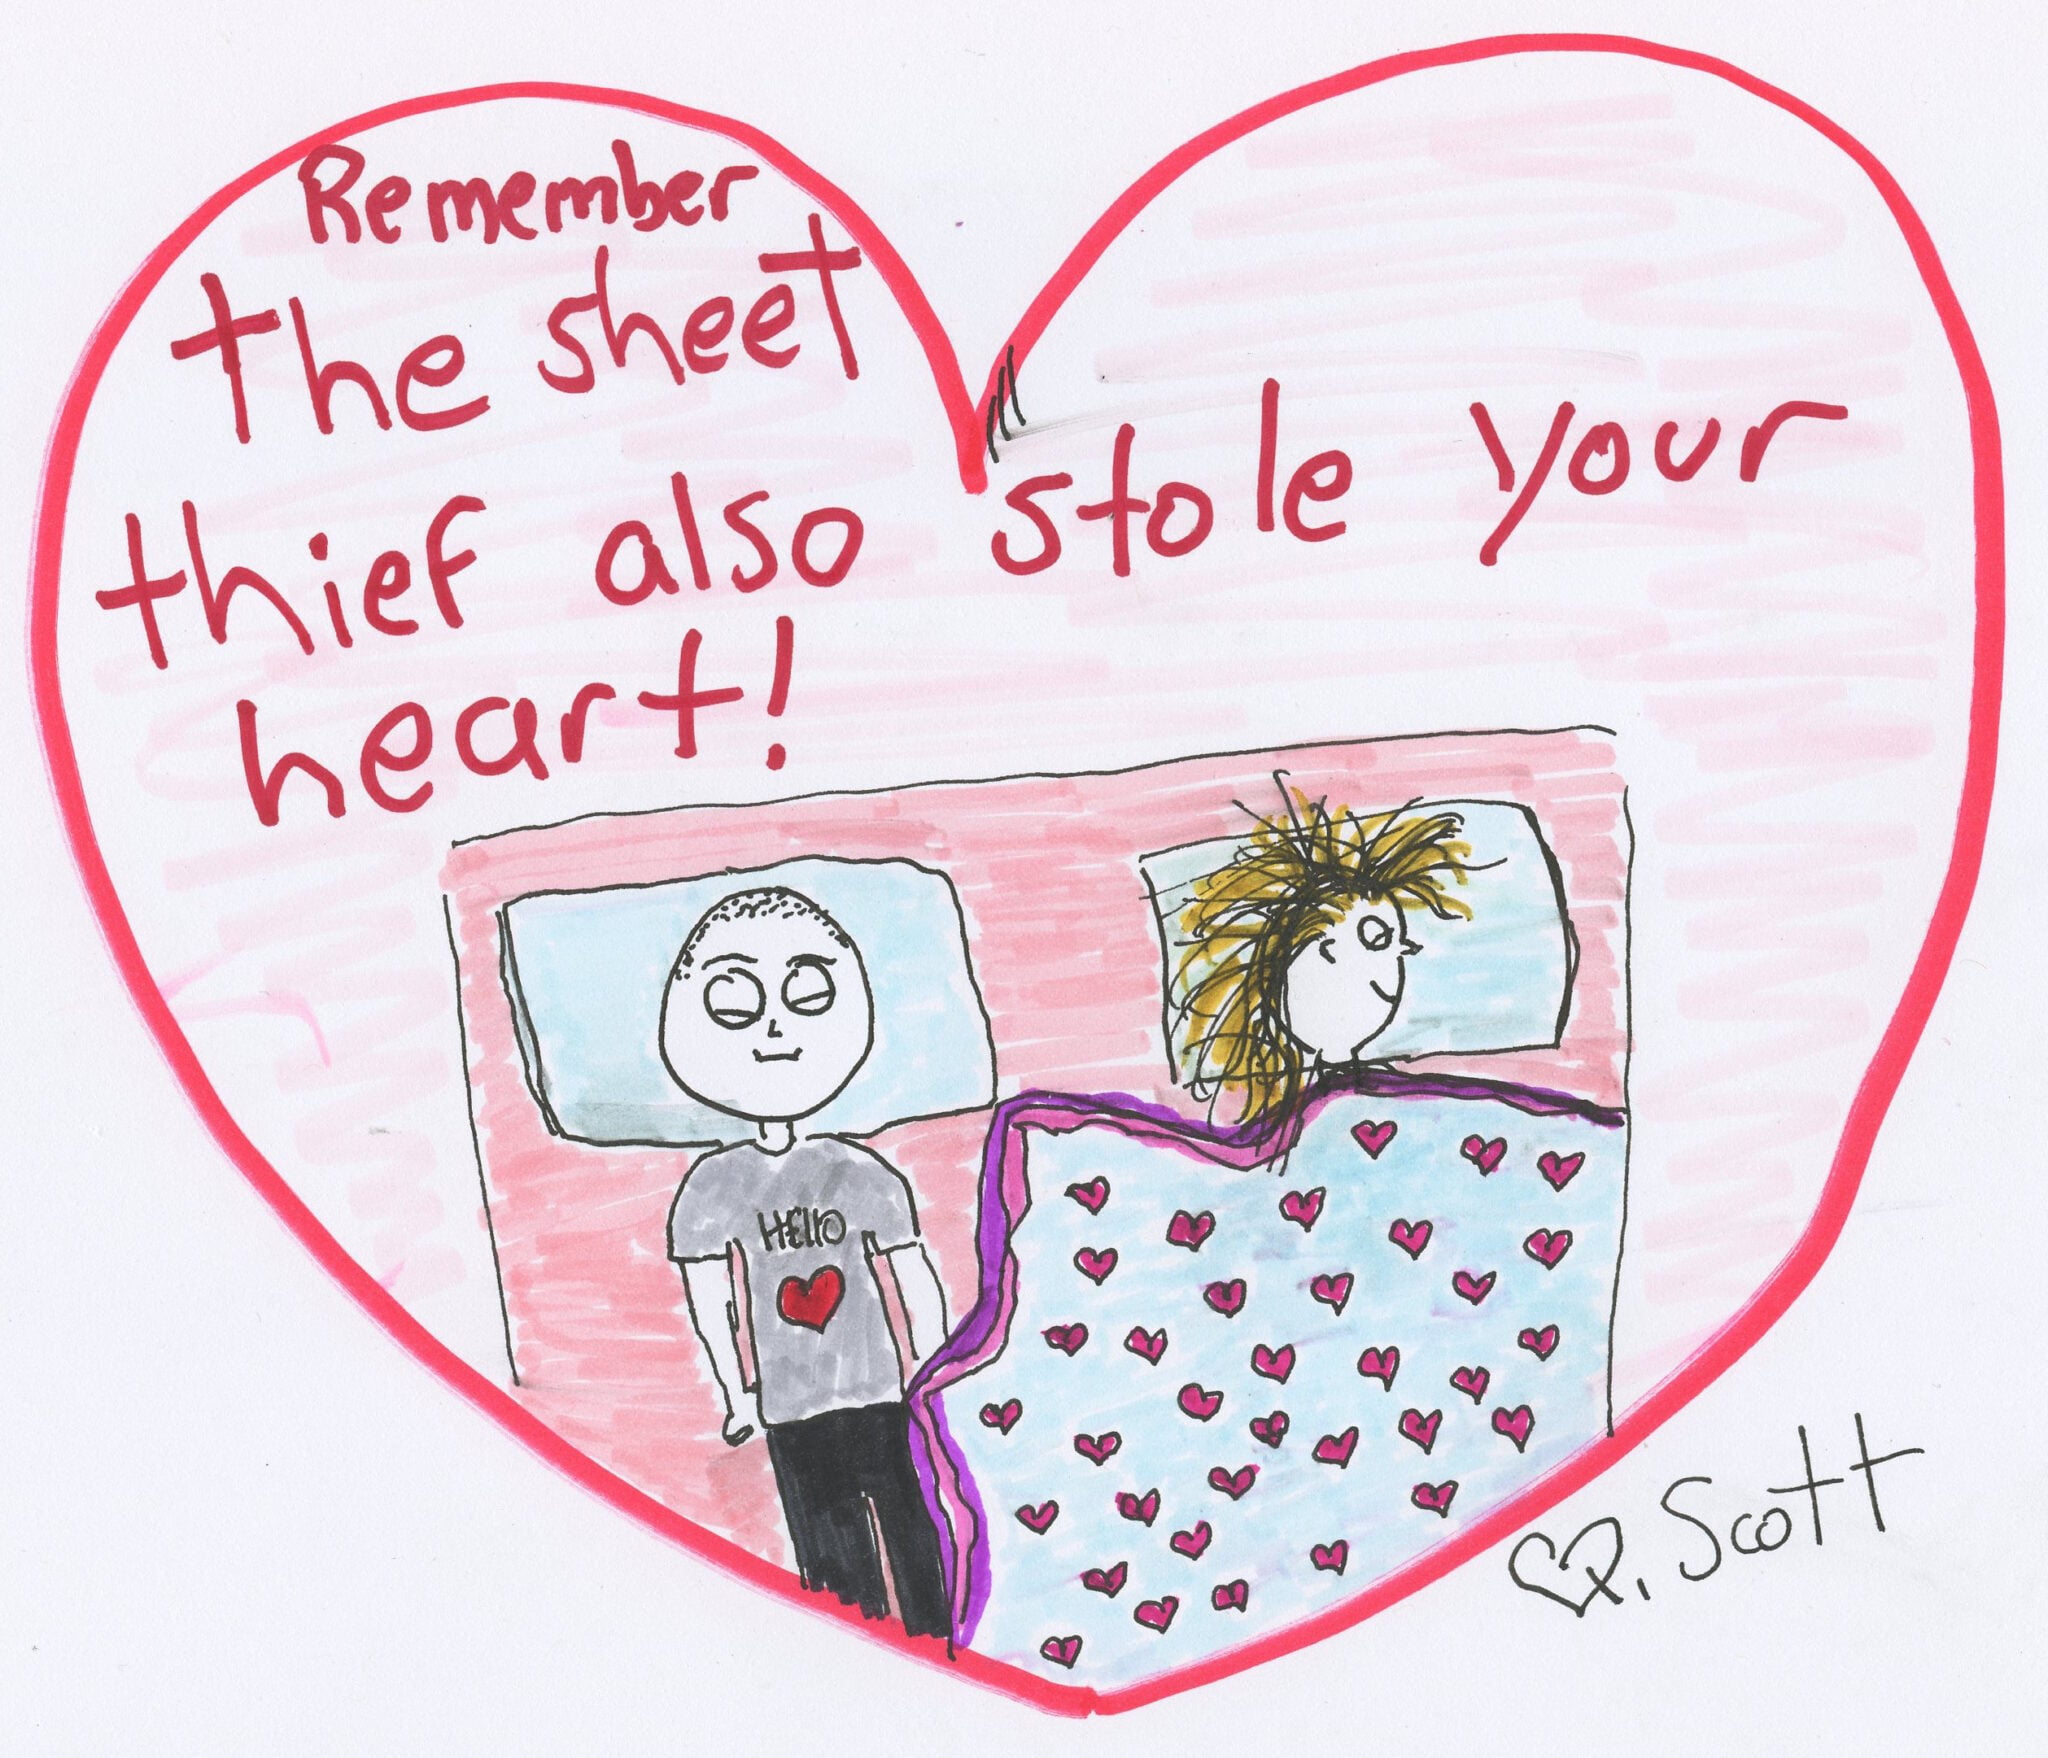 Remember the sheet thief also stole your heart.